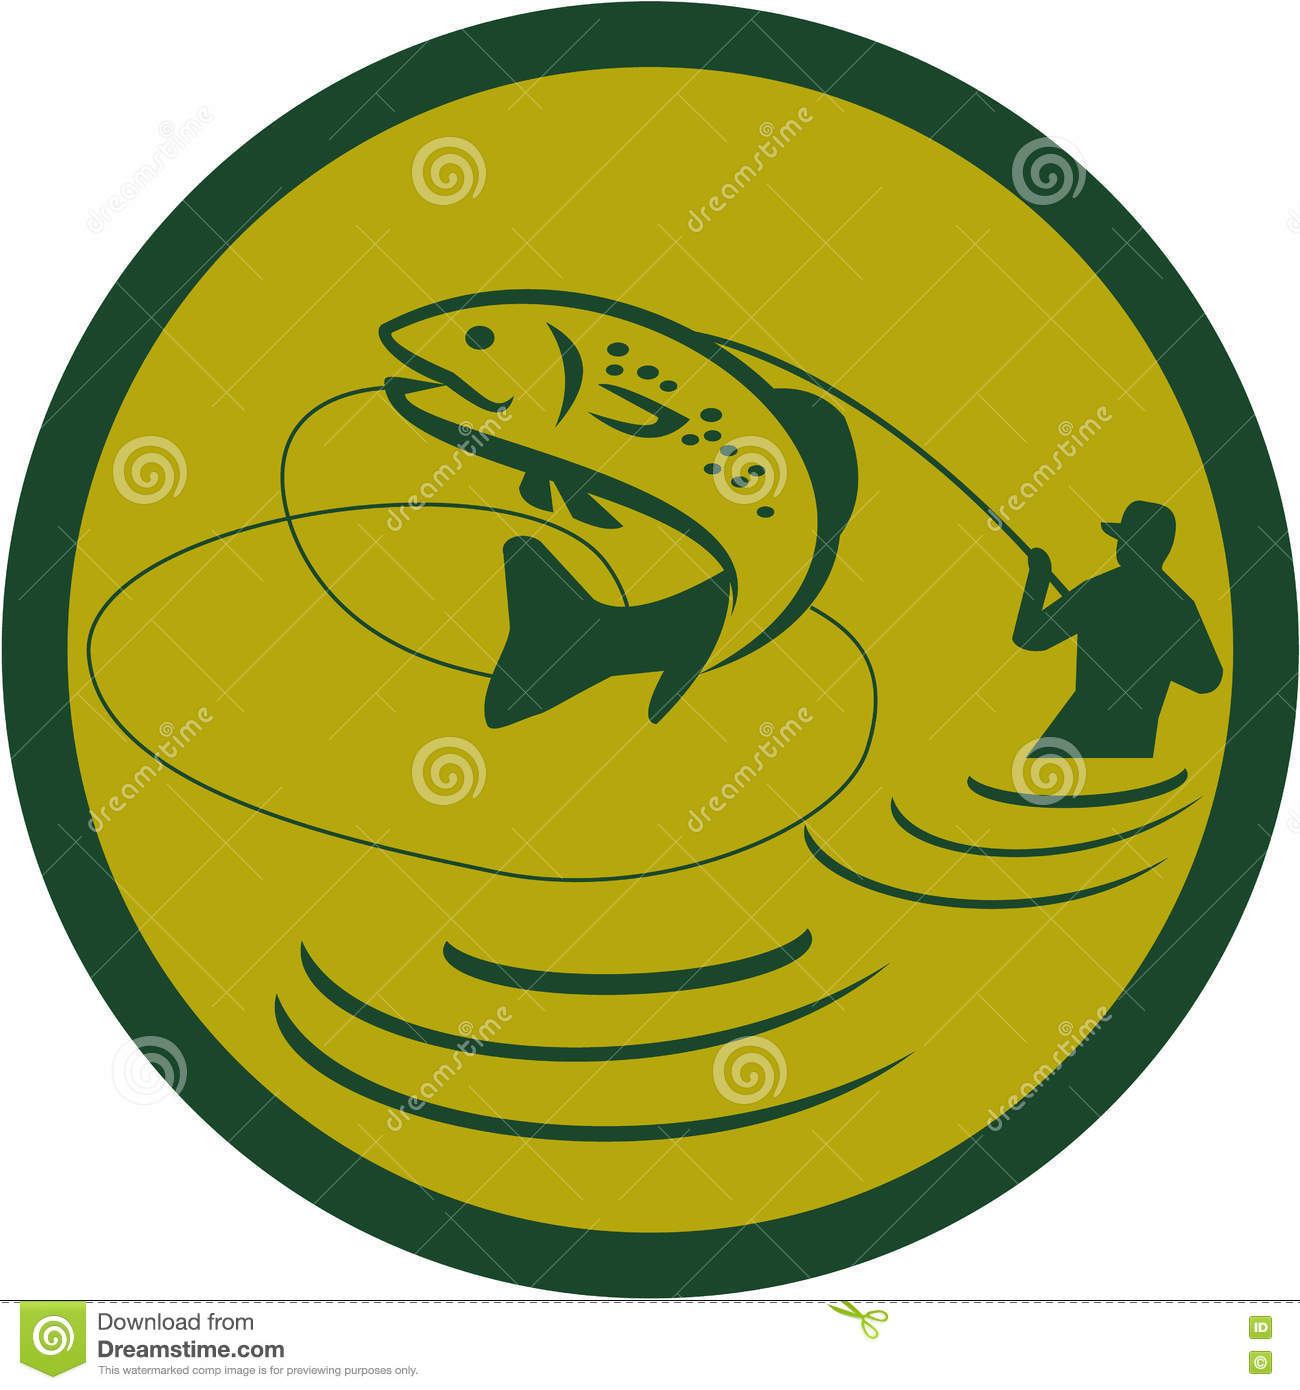 Download Trout Jumping Fly Fisherman Circle Retro Stock Vector - Illustration of illustration, marine: 75475108